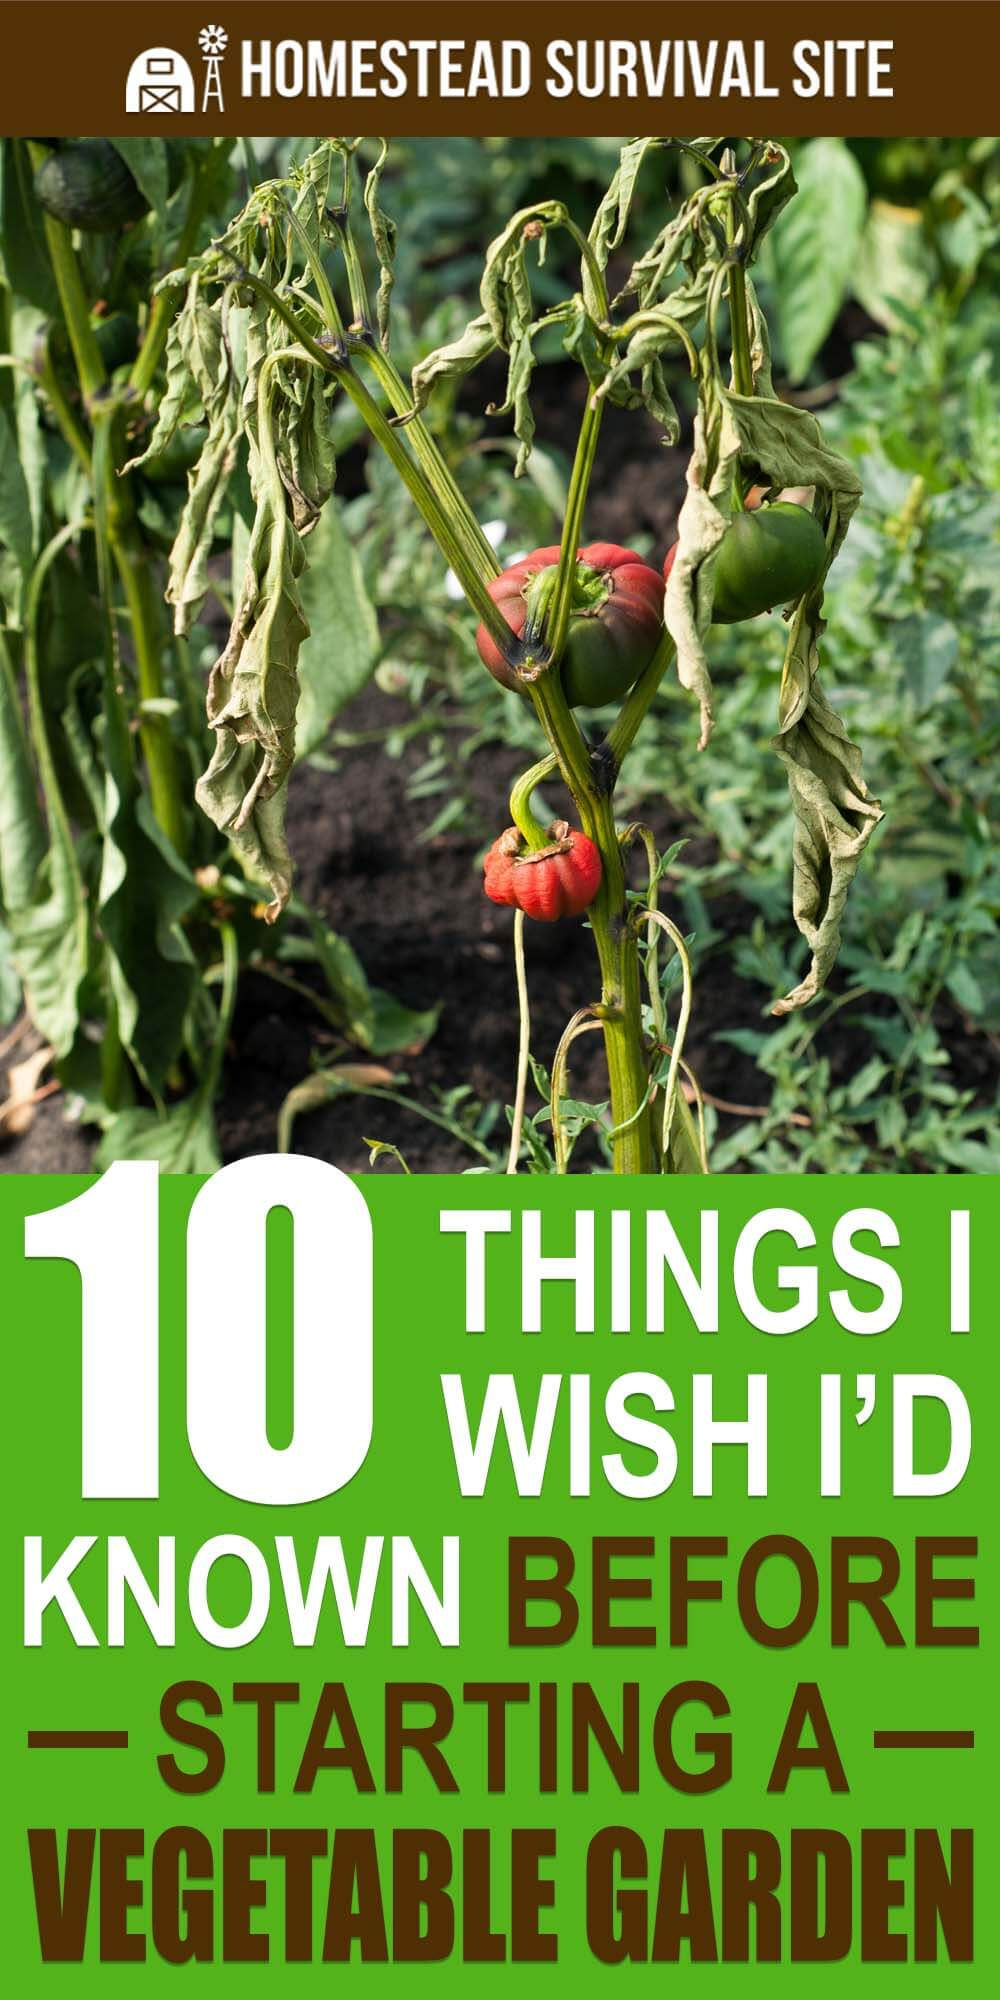 10 Things I Wish I'd Known Before Starting a Vegetable Garden